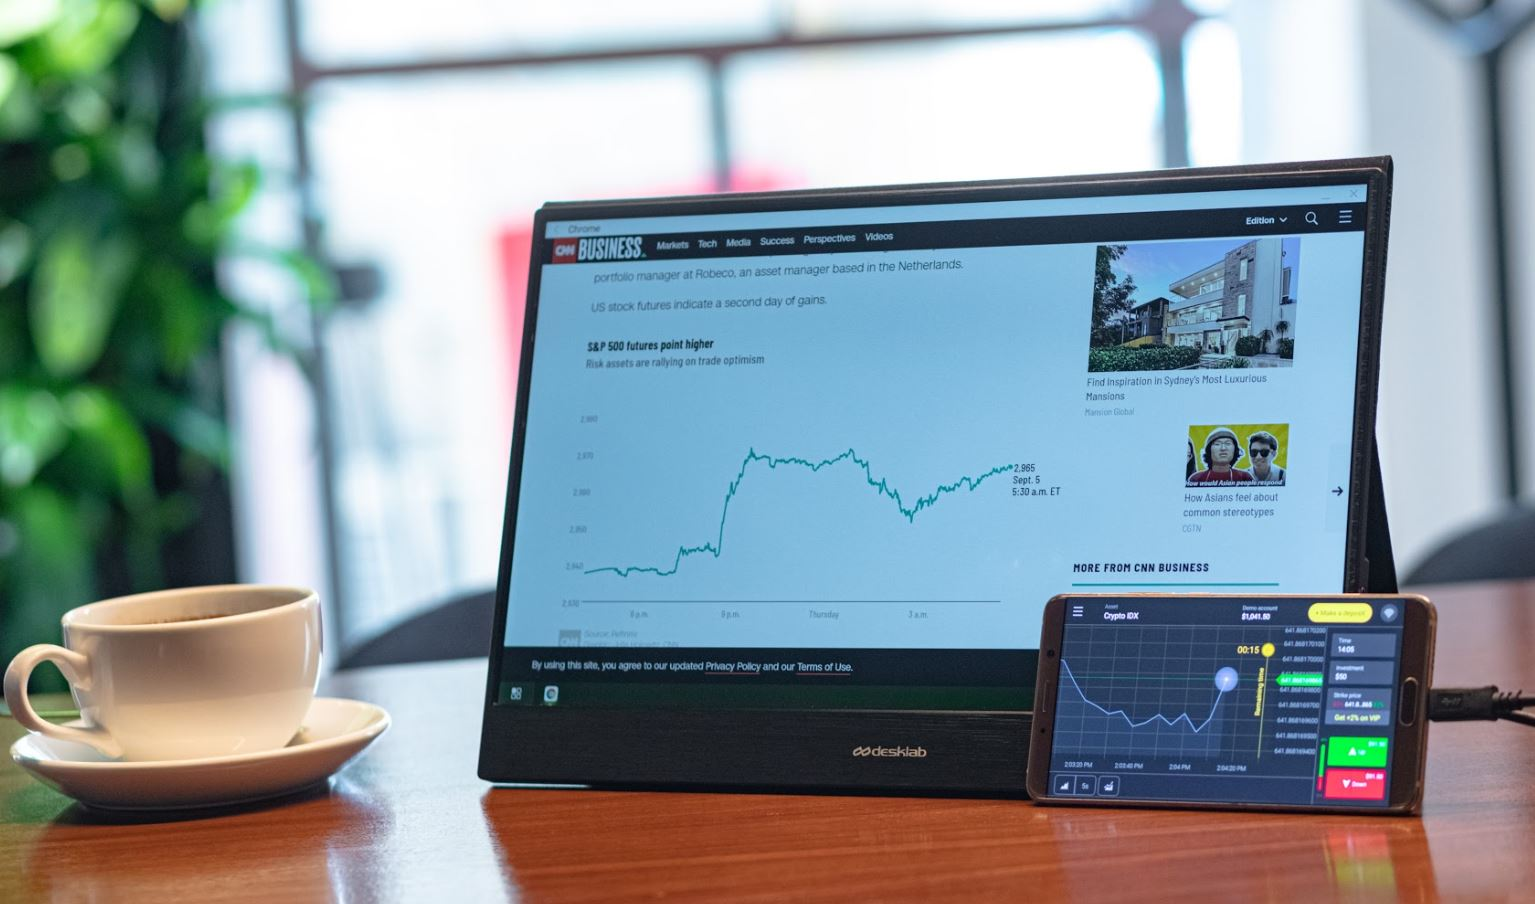 AirView 2 4K Wireless Touchscreen Monitor announced: All you need to know